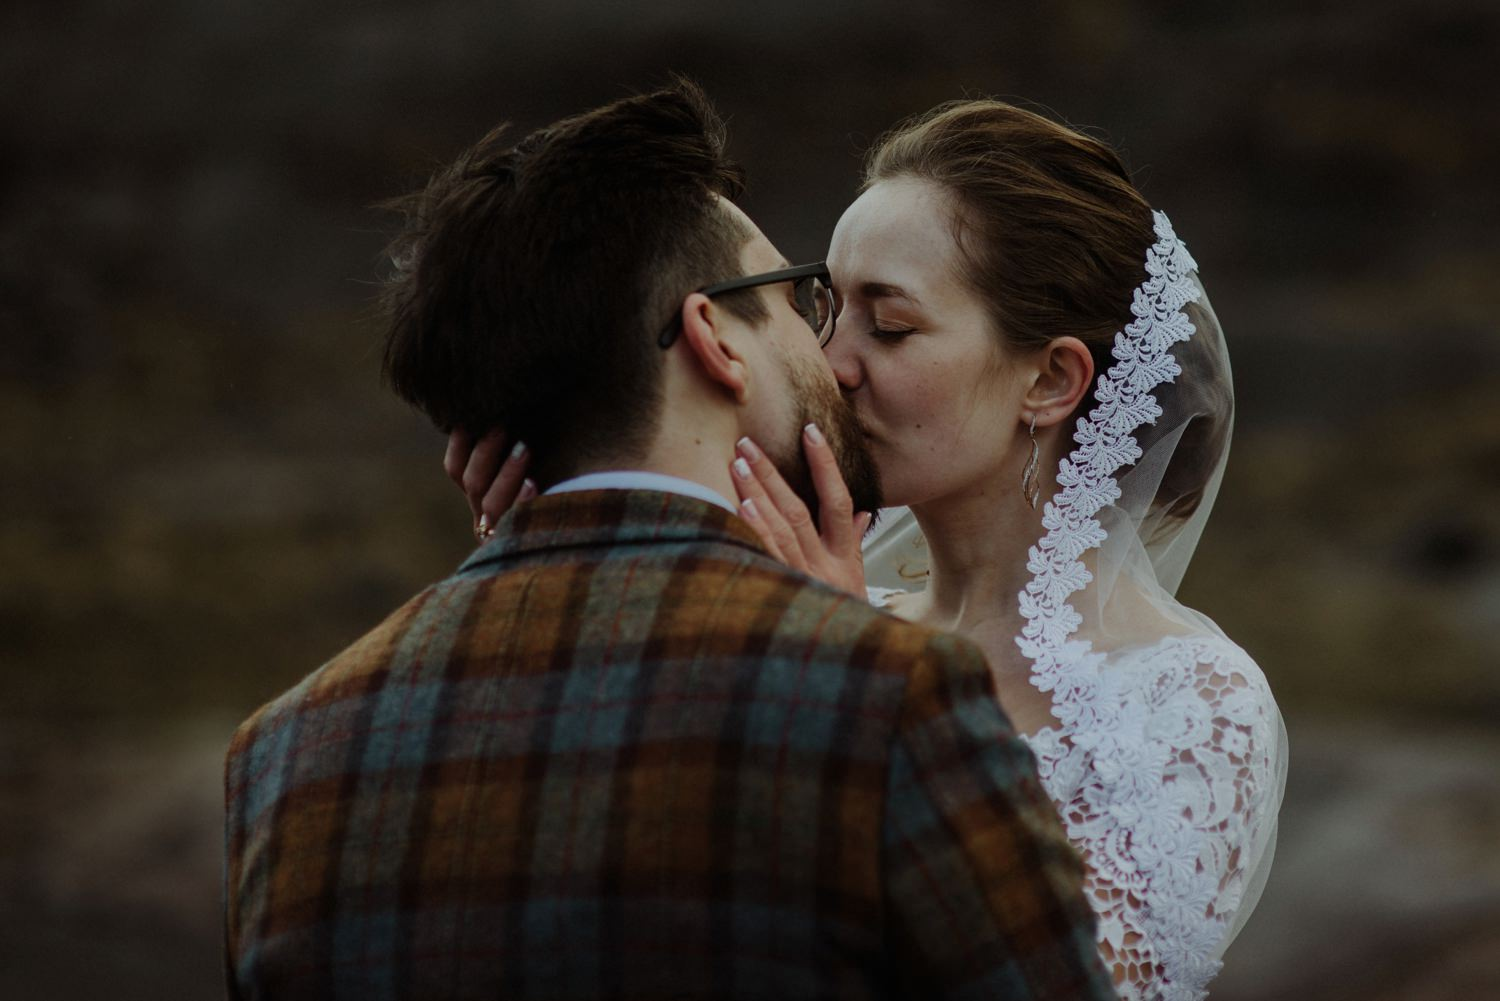 lsle of Skye elopement photographer_0444